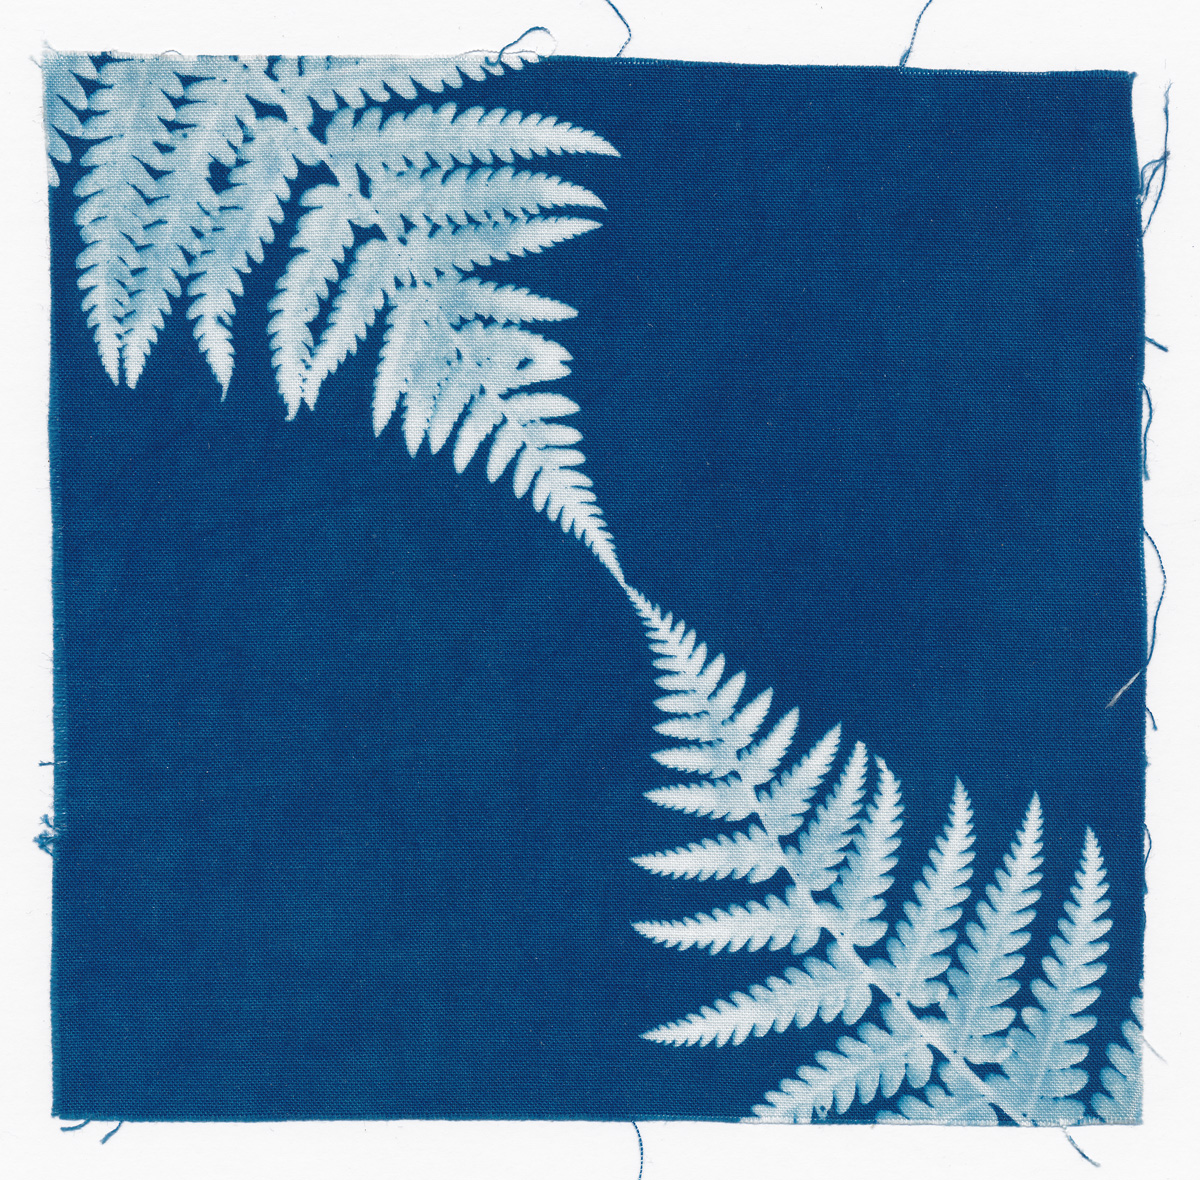 Touch, cyanotype on cotton fabric, Mike Tedder